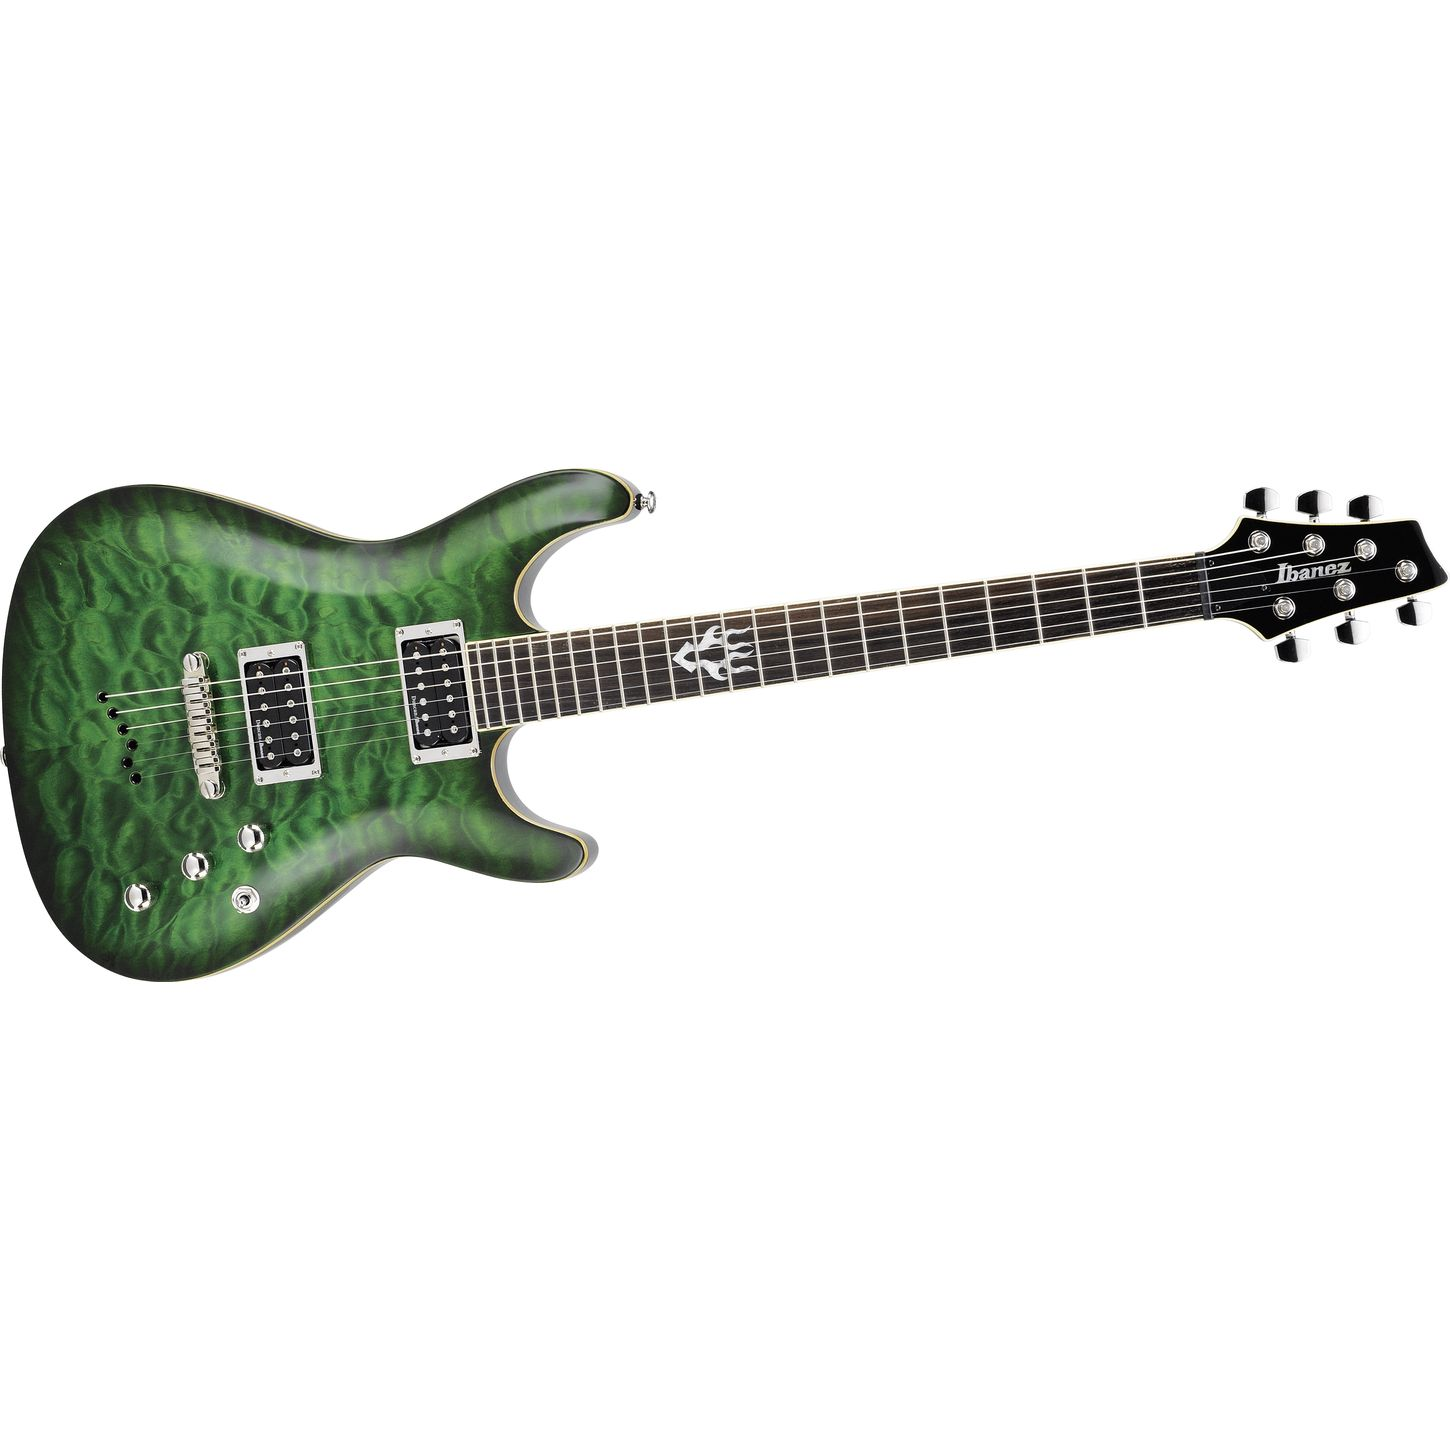 Guitar Ibanez 25746 Hd Wallpapers in Music   Imagescicom 1450x1450